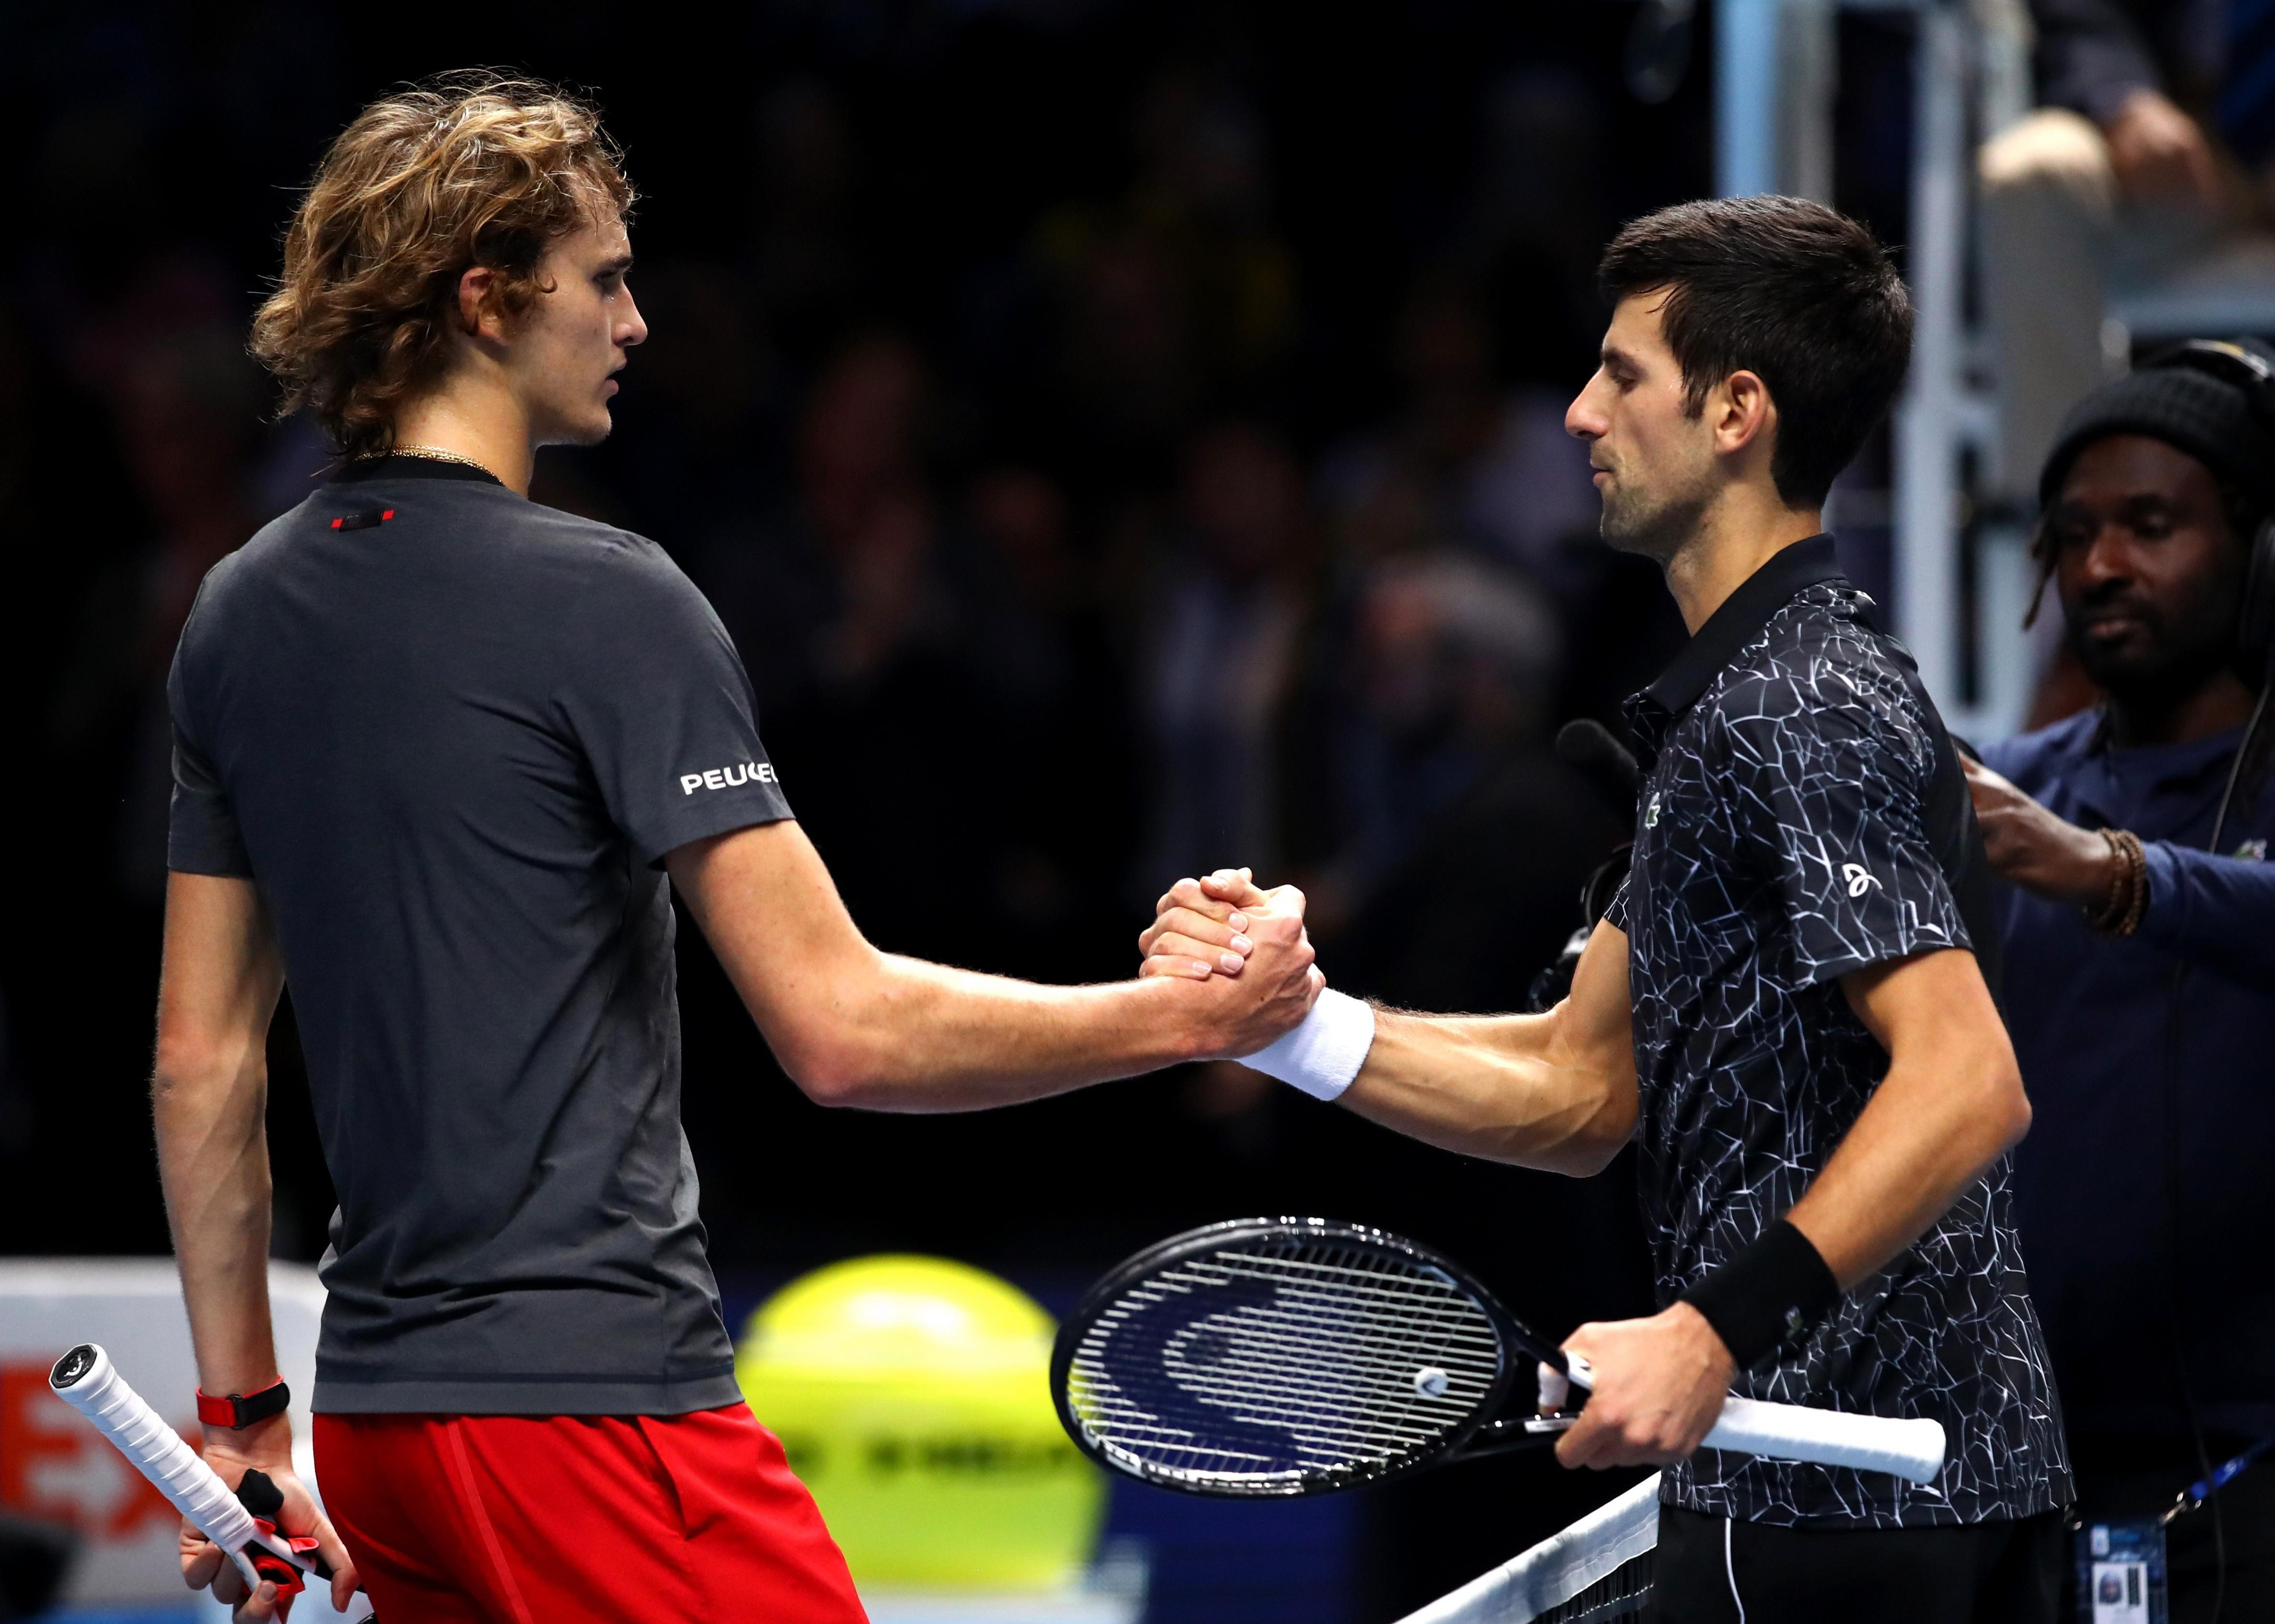 The Serbian star went on to win 6-4 6-1 at the O2 Arena